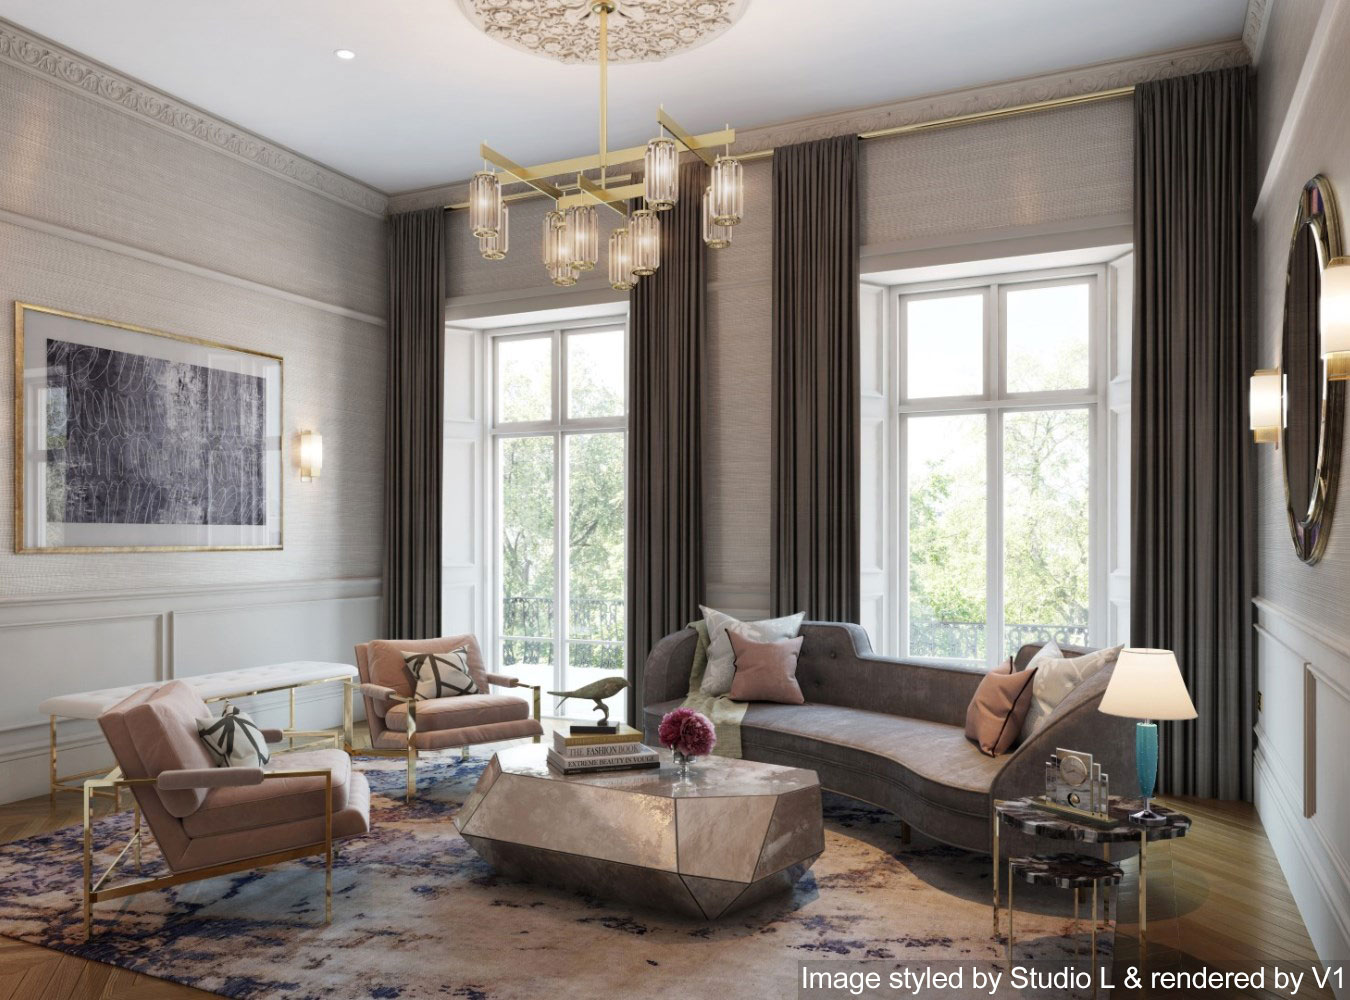 2019 interior trends the ones to watch - 2019 living room trends ...